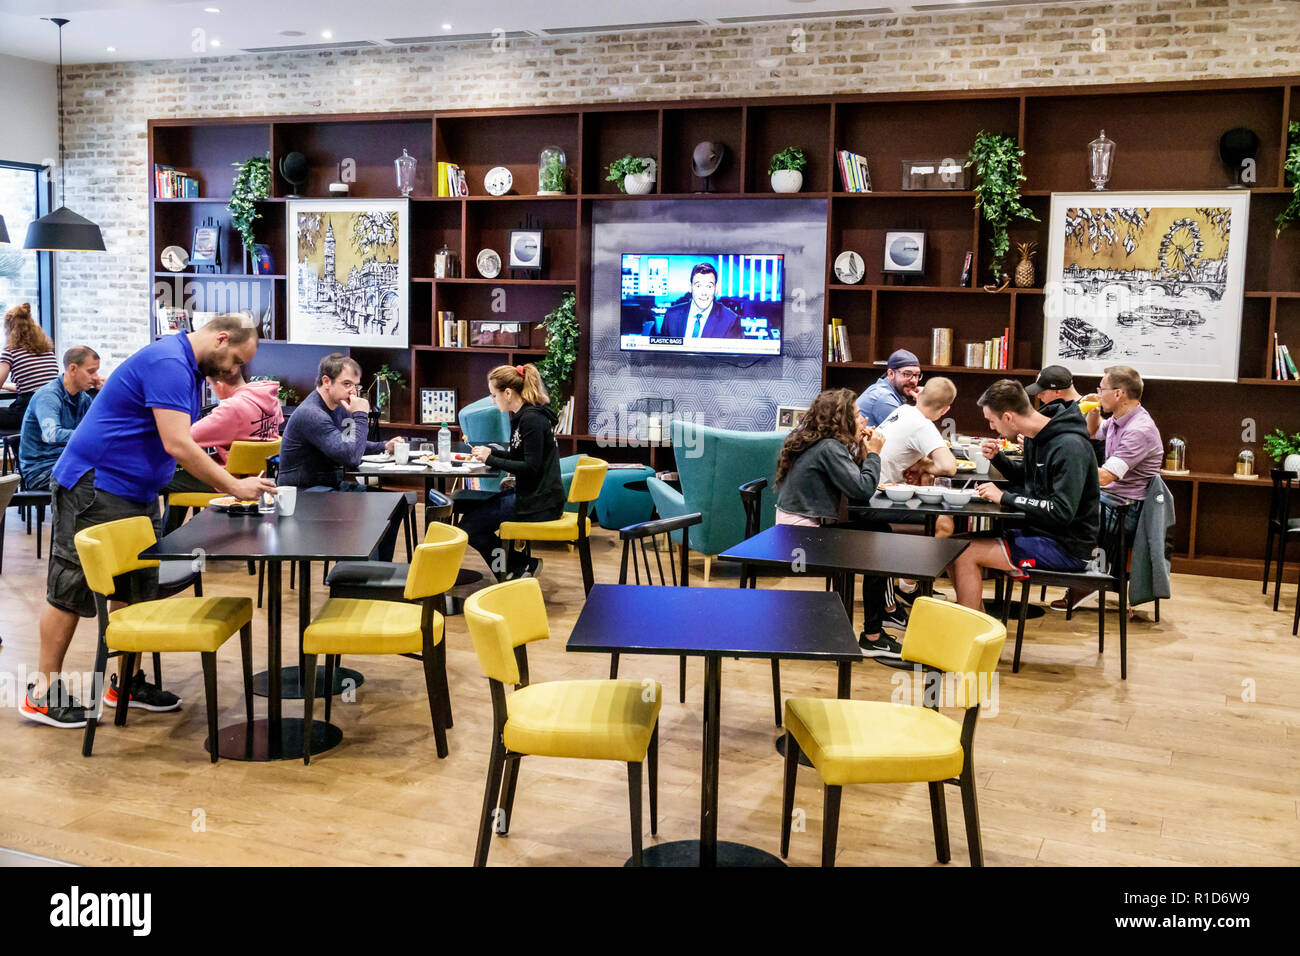 London England United Kingdom Great Britain Lambeth Staybridge Suites London Vauxhall hotel inside interior dining room free included breakfast tables - Stock Image